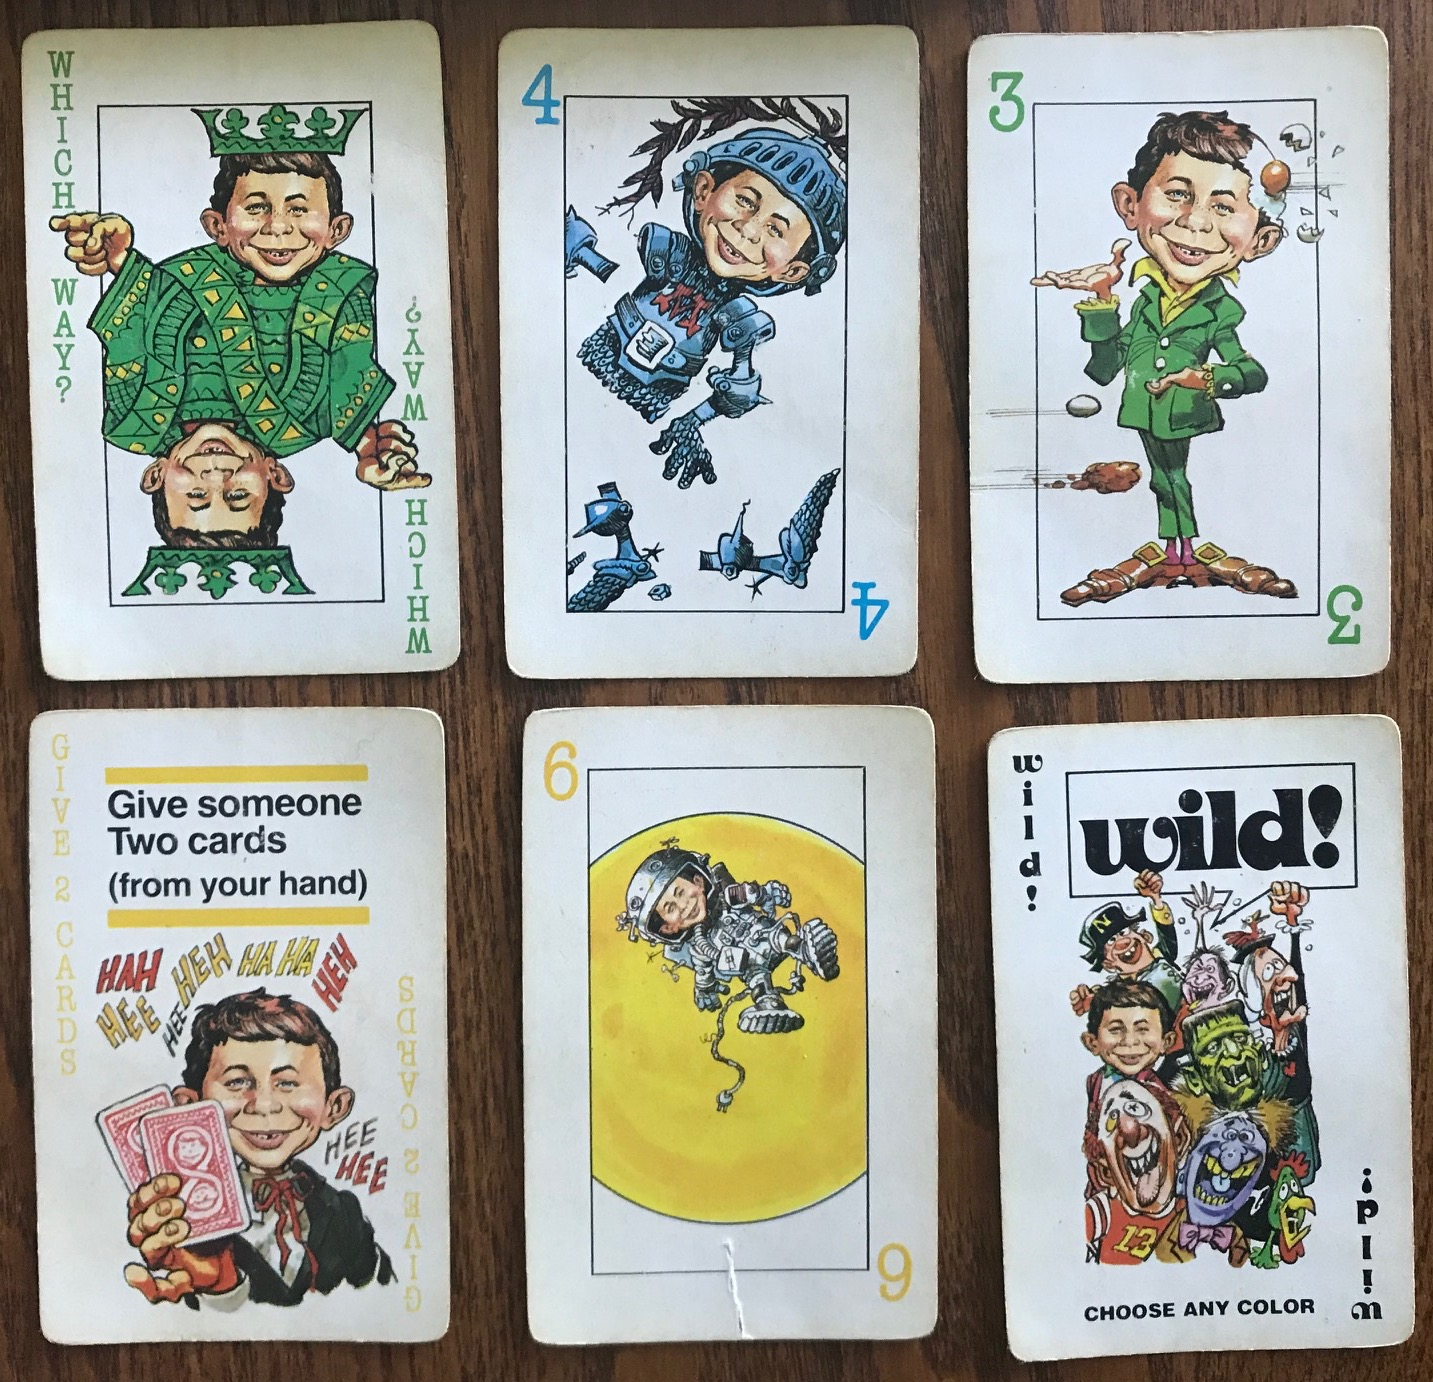 Miscellaneous cards showing a Wild, a green 3, a blue 4, a yellow 6, a Which Way